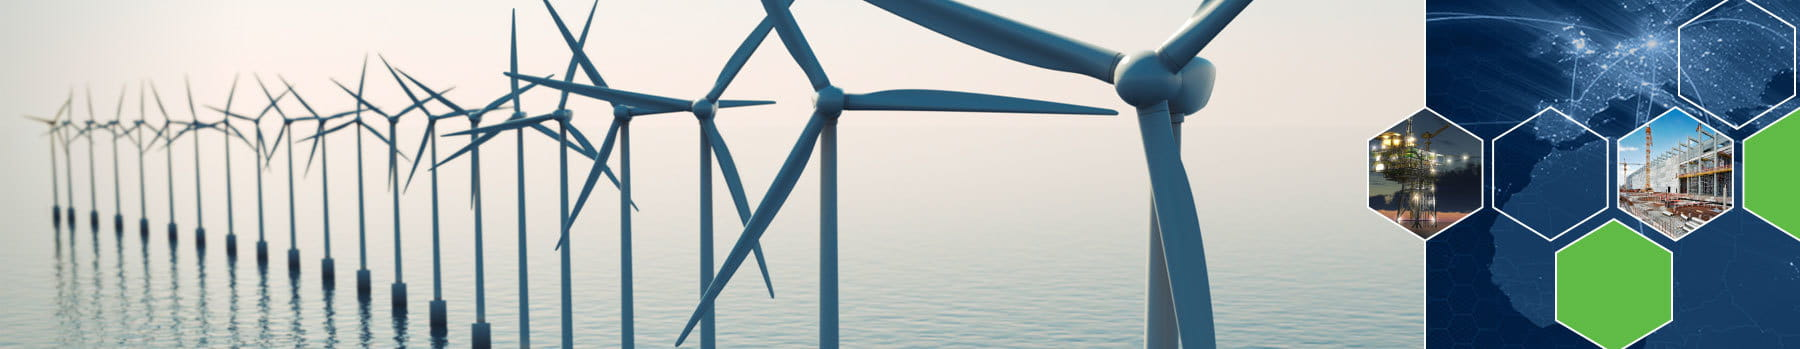 Windfarm_Hero_CONNECTIONEvnt_1800x349_0216